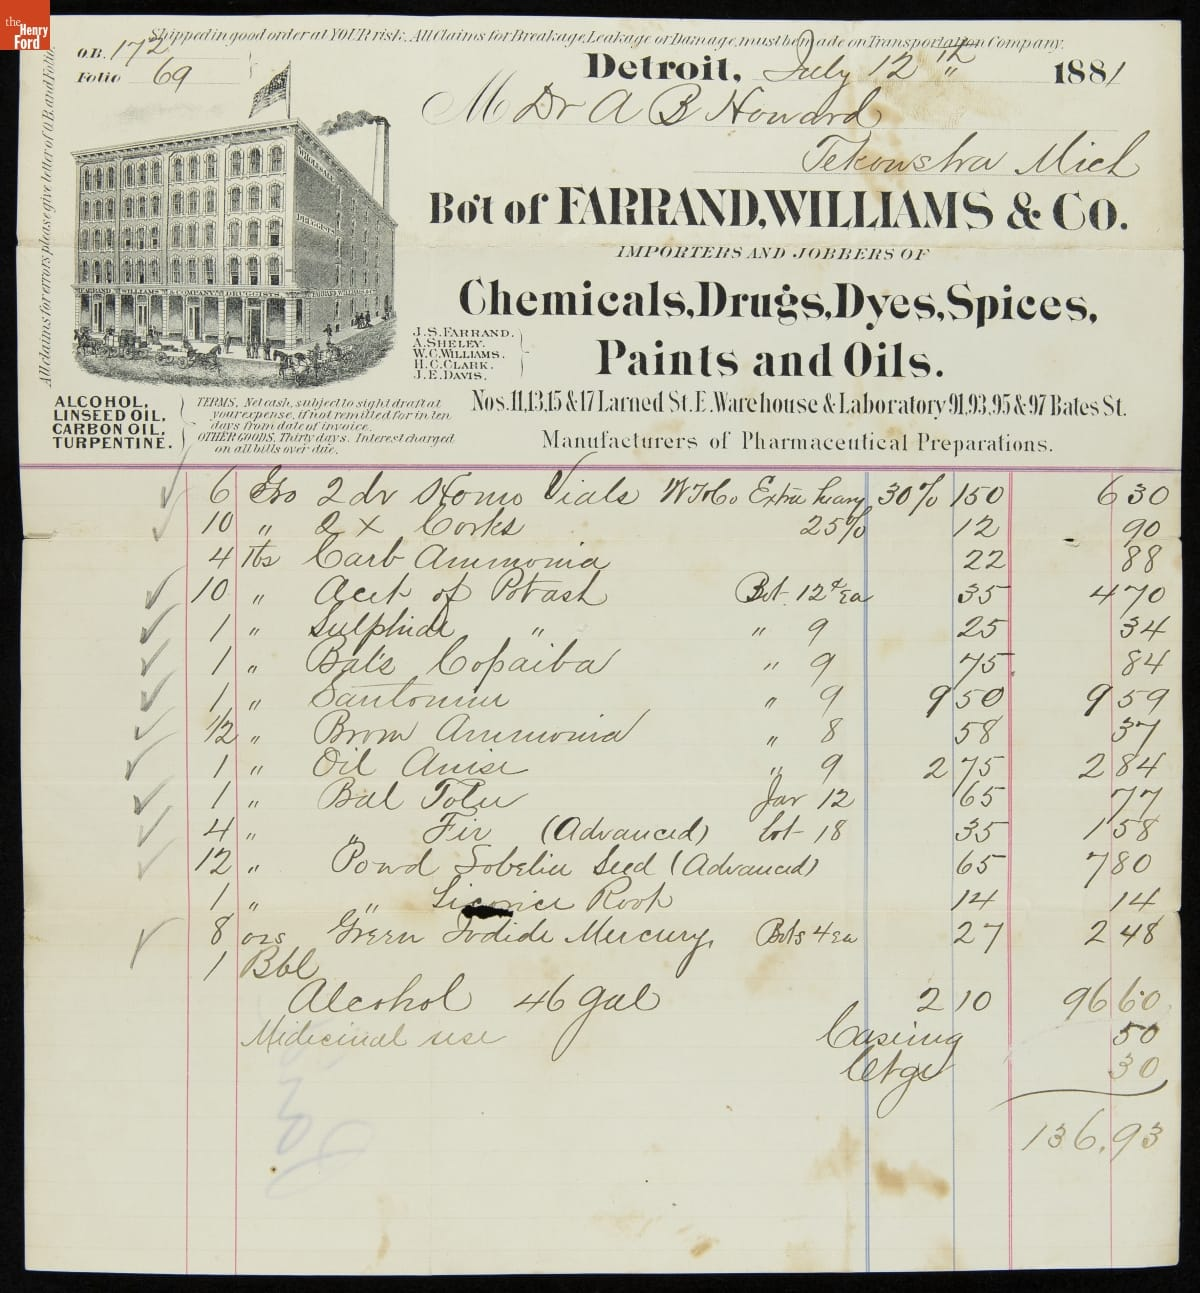 Receipt on letterhead with handwritten list of items, quantities, and prices